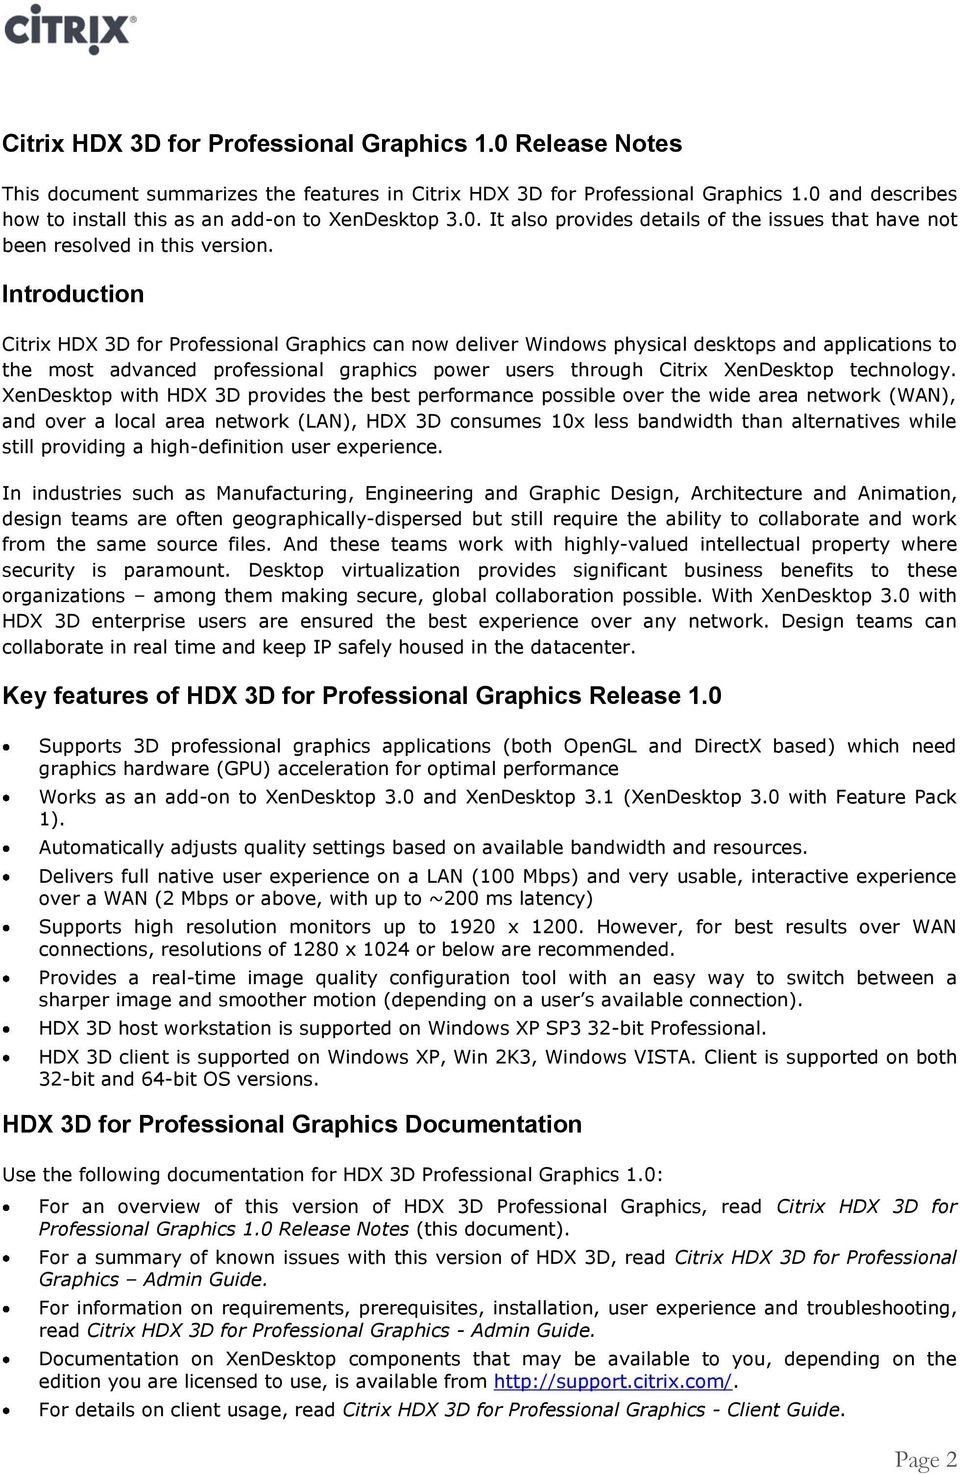 Introduction Citrix HDX 3D for Professional Graphics can now deliver Windows physical desktops and applications to the most advanced professional graphics power users through Citrix XenDesktop